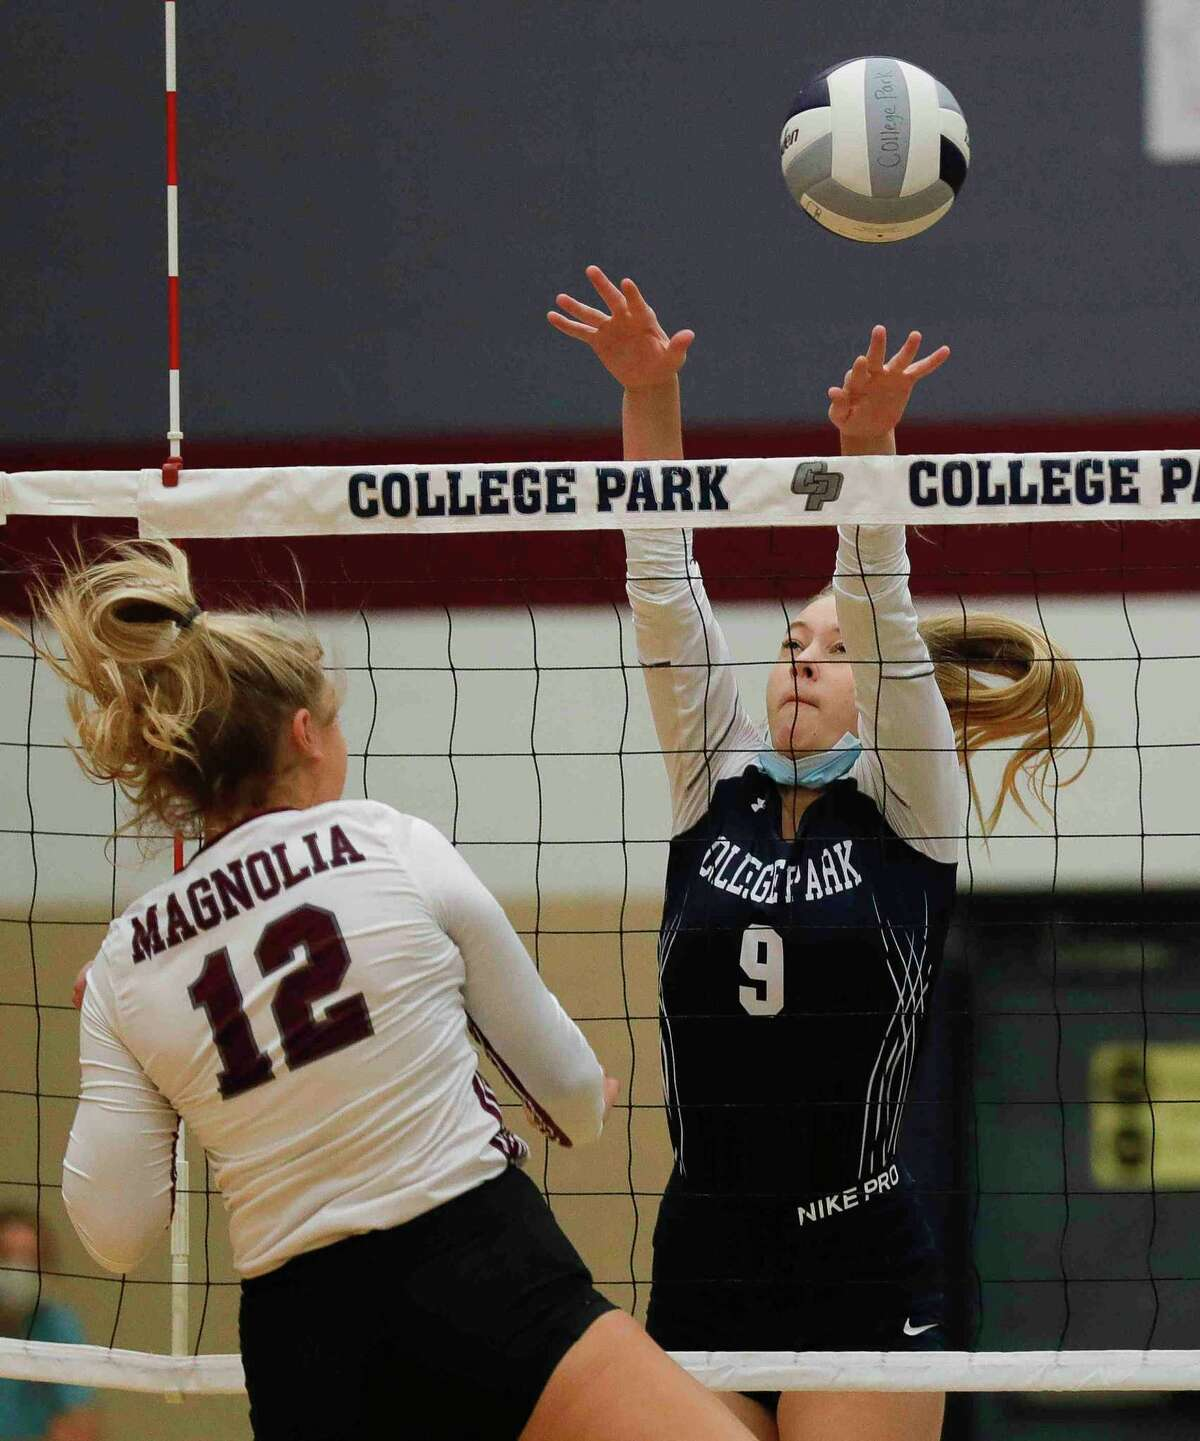 College Park's Koralyn Owens (9) blocks a shot by Magnolia's Sydney Gentry (12) during the first set of a non-district high school volleyball match at College Park High School, Saturday, Sept. 26, 2020, in The Woodlands.